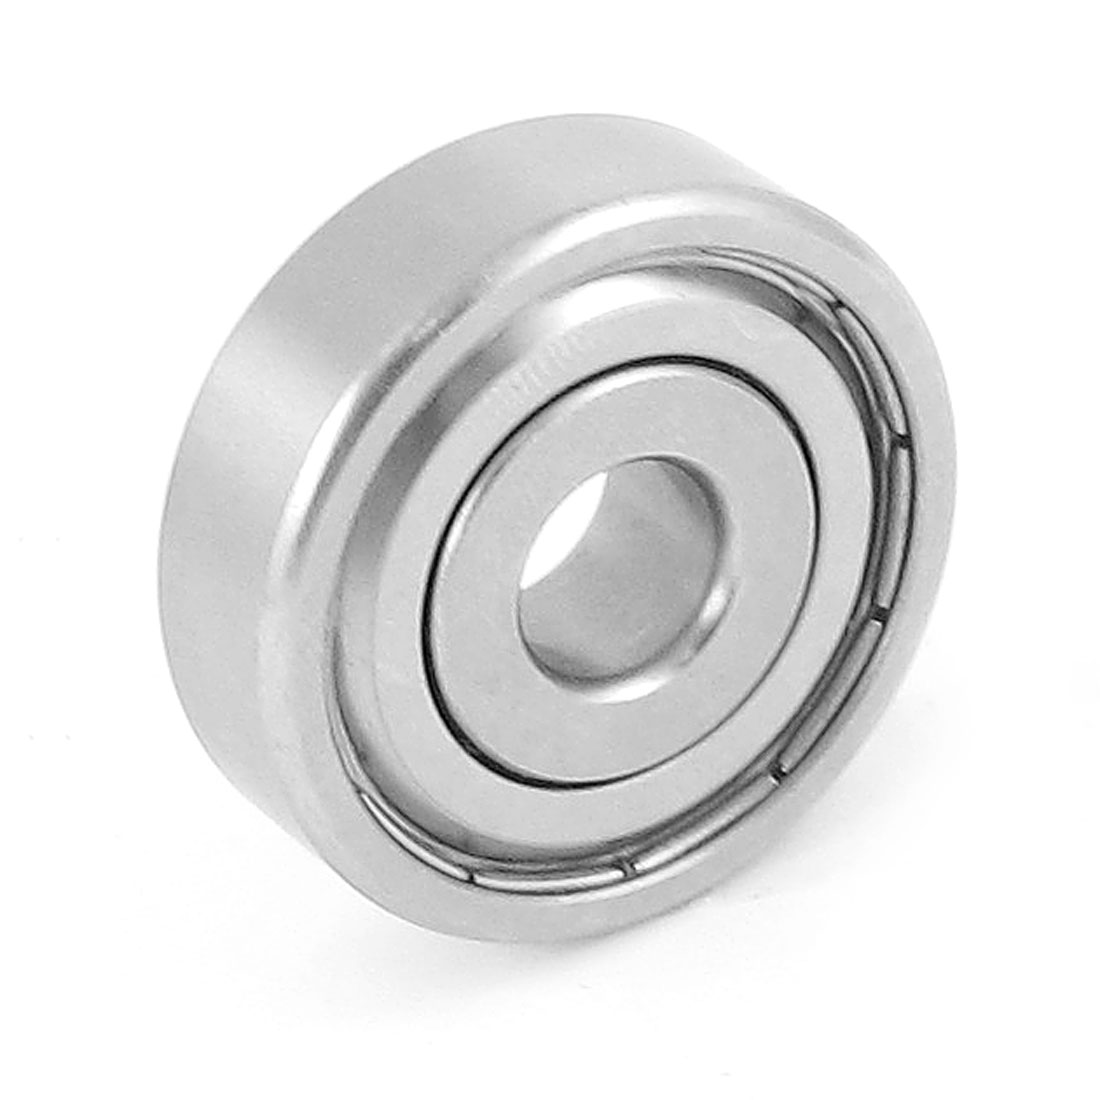 Stainless Steel 35mm x 10mm x 11mm Sealed Deep Groove Ball Bearing